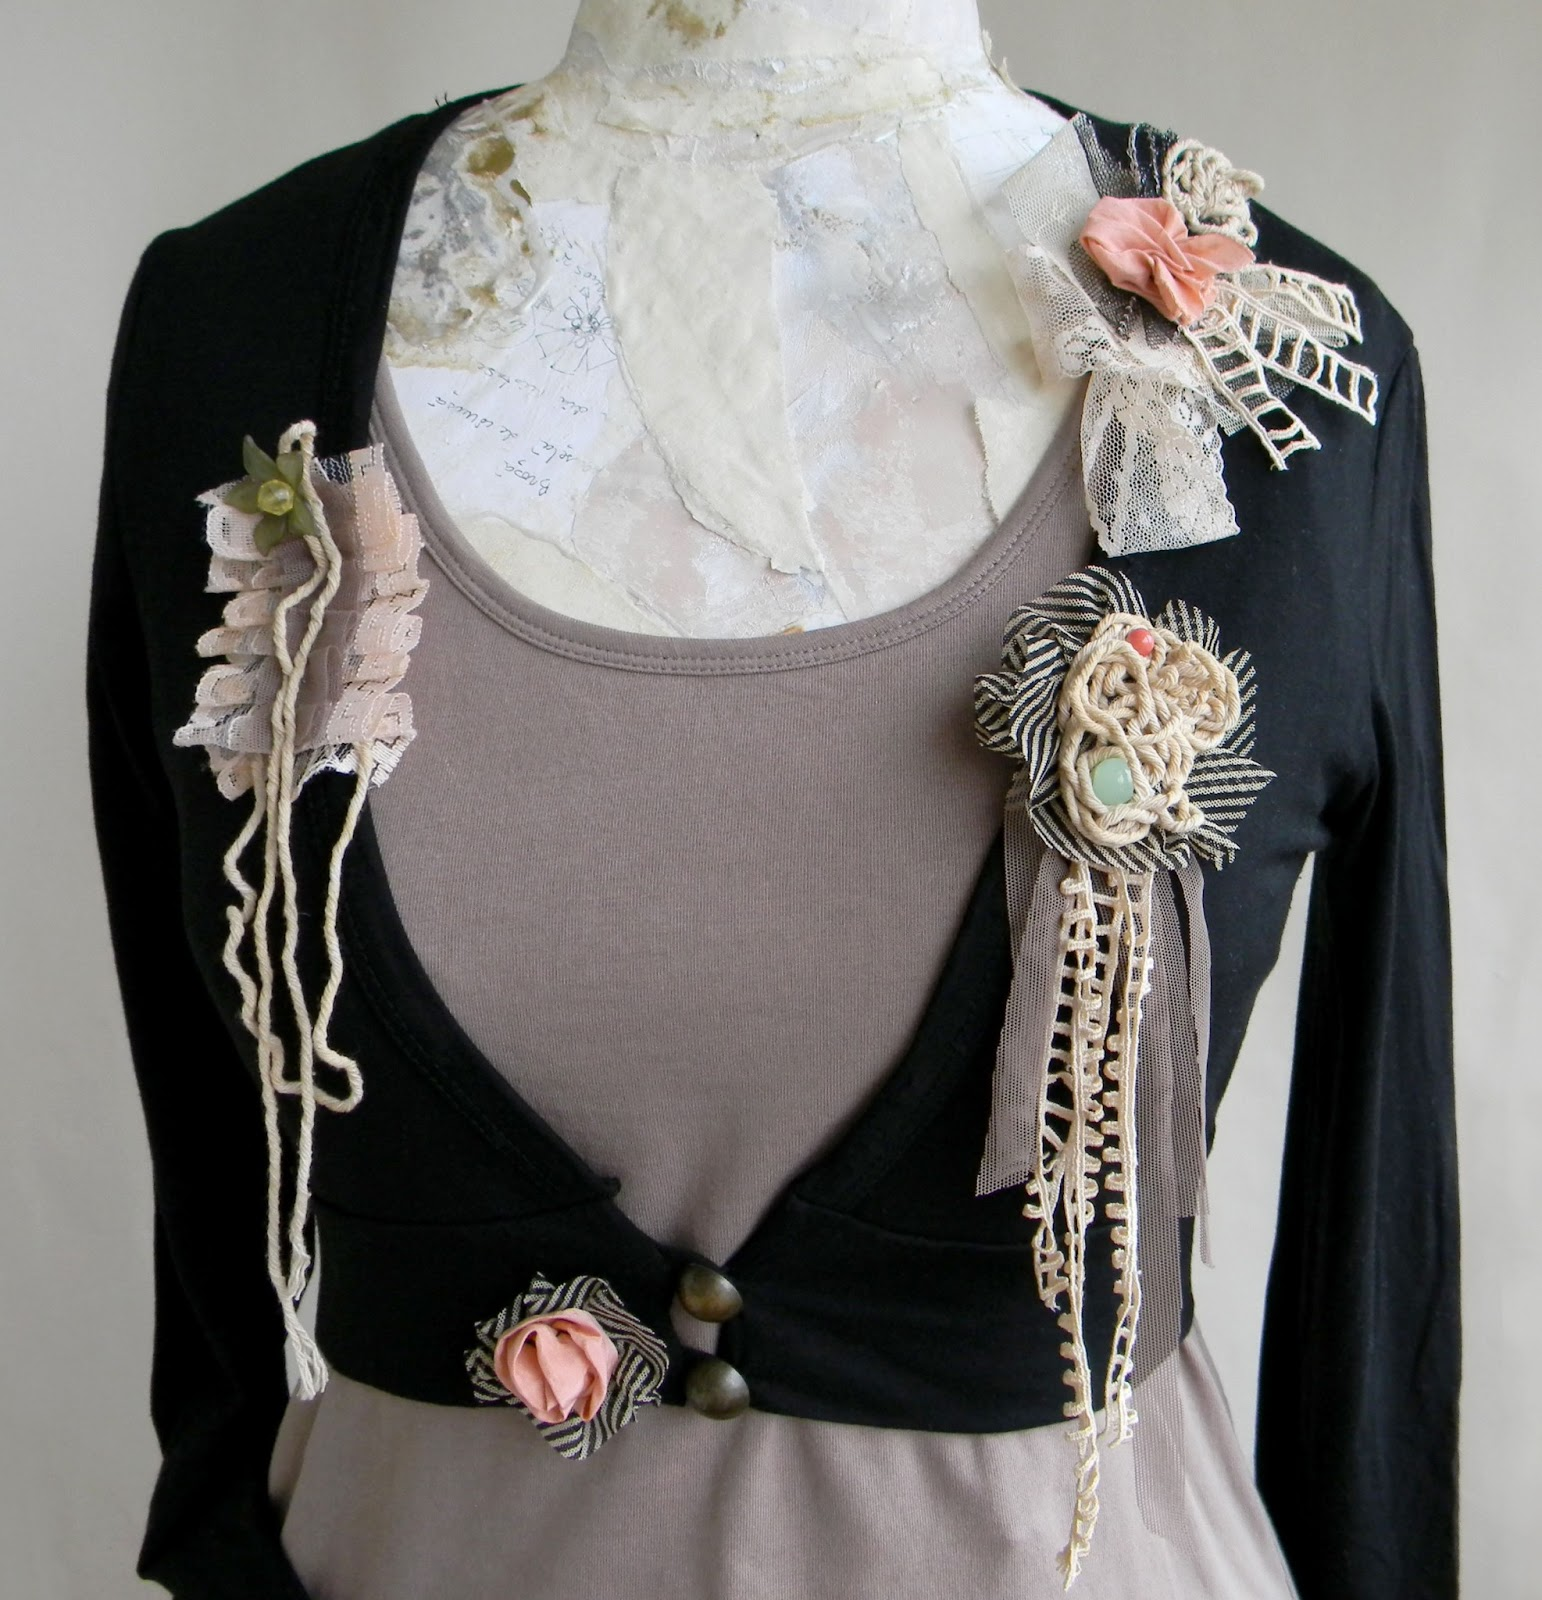 Unique Handmade Bolero Blouse Jacket Fashion Original Clothing Handcrafted Fashion